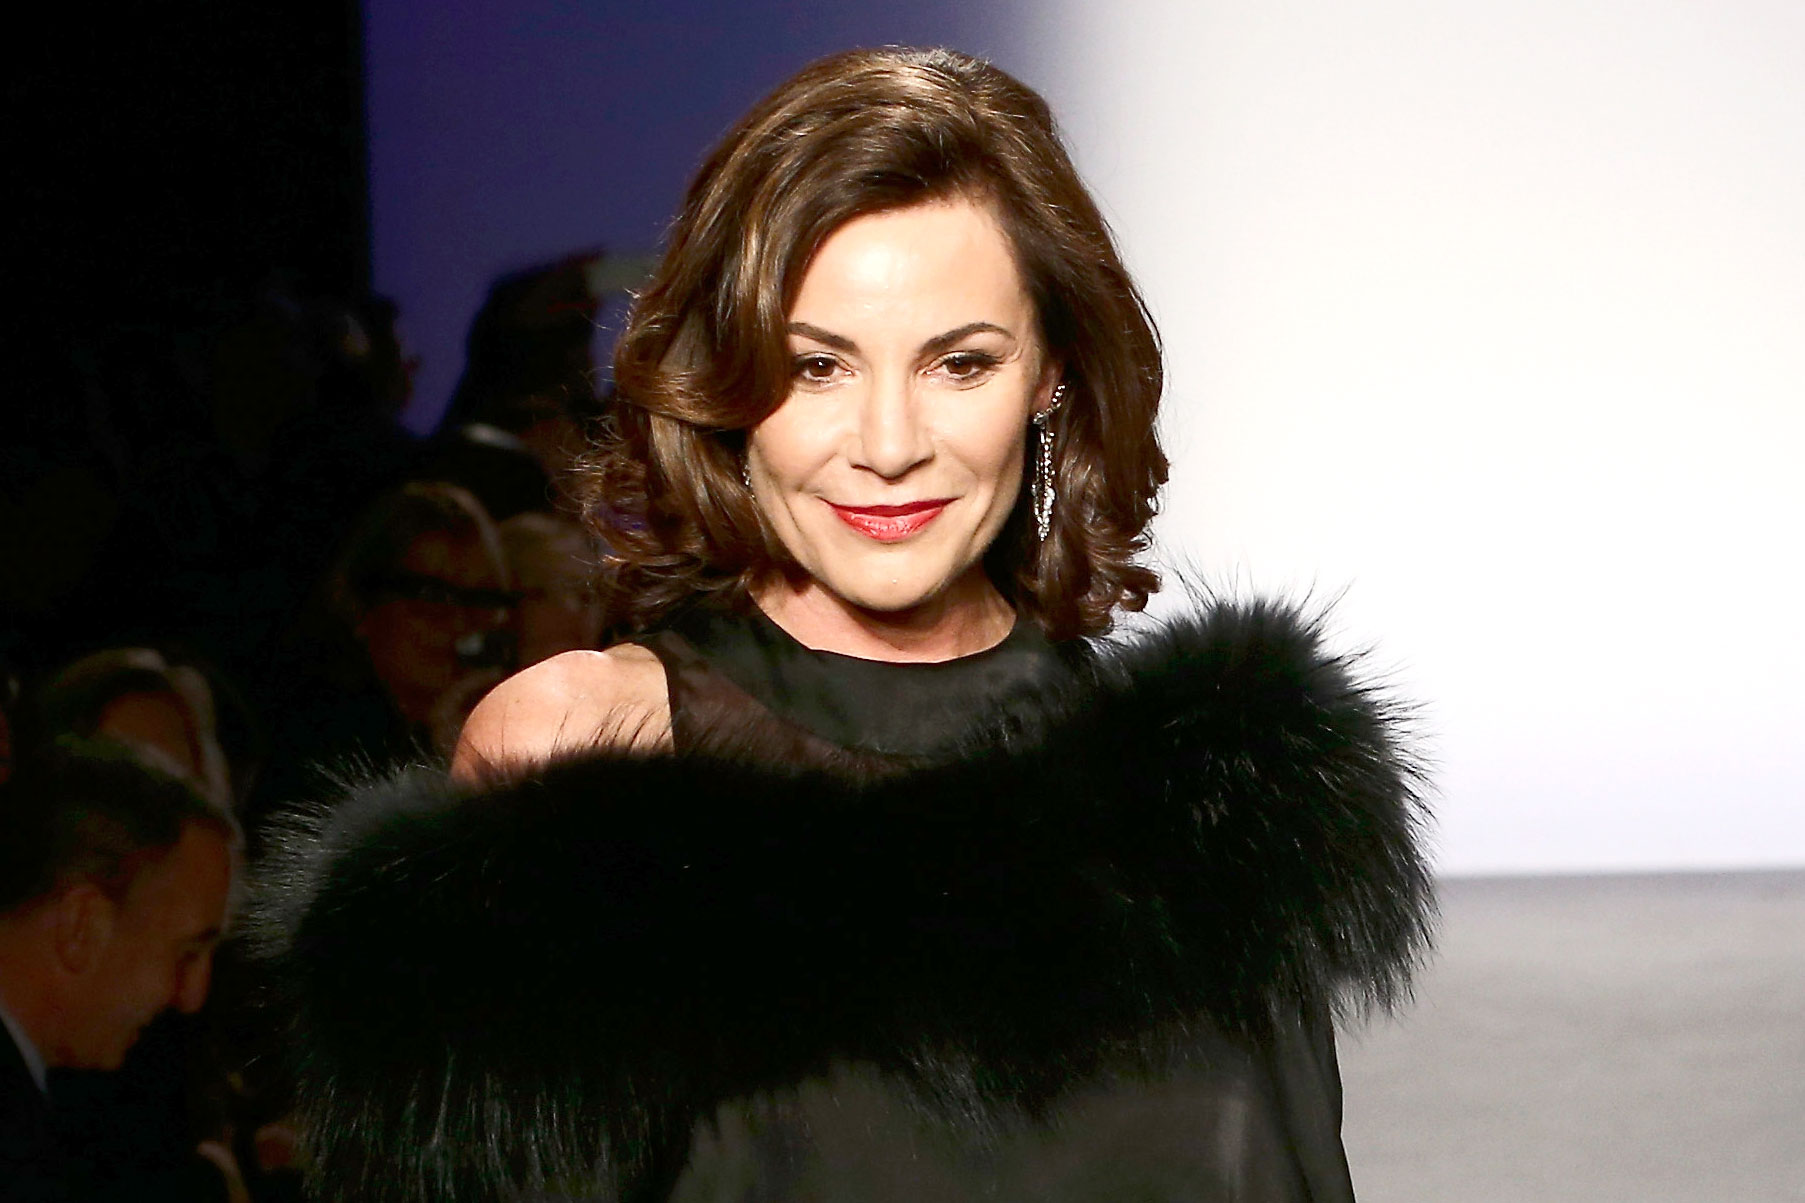 Luann de Lesseps on Drinking Parole Report